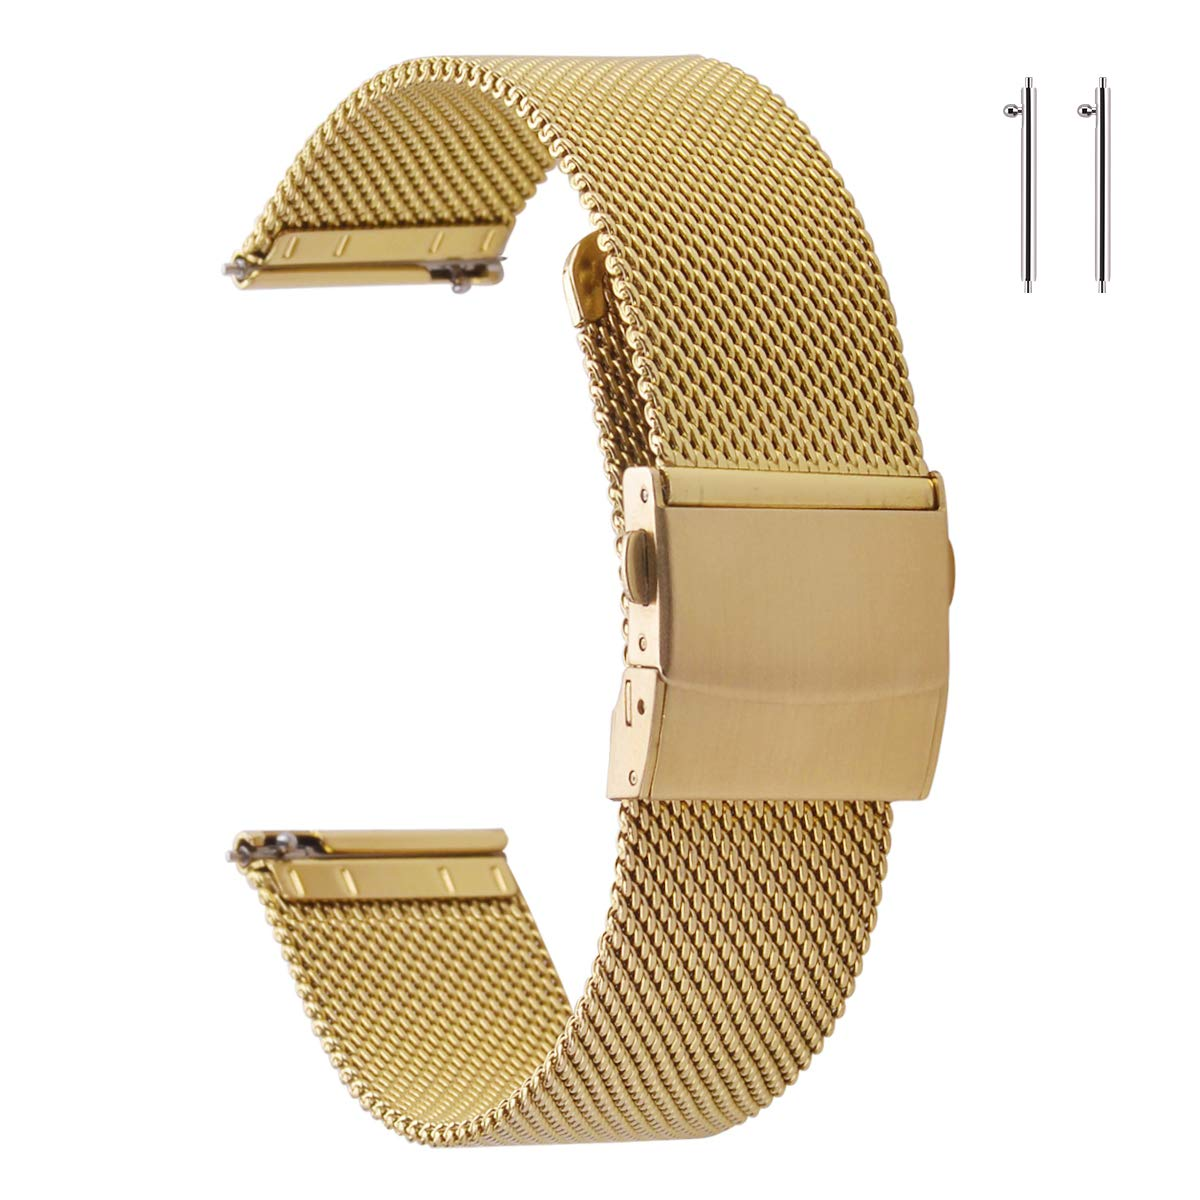 EACHE Stainless Steel Mesh Watch Band for Men &Women Quick Release Adjustable Mesh Watch Straps 14mm 16mm 18mm 20mm 22mm